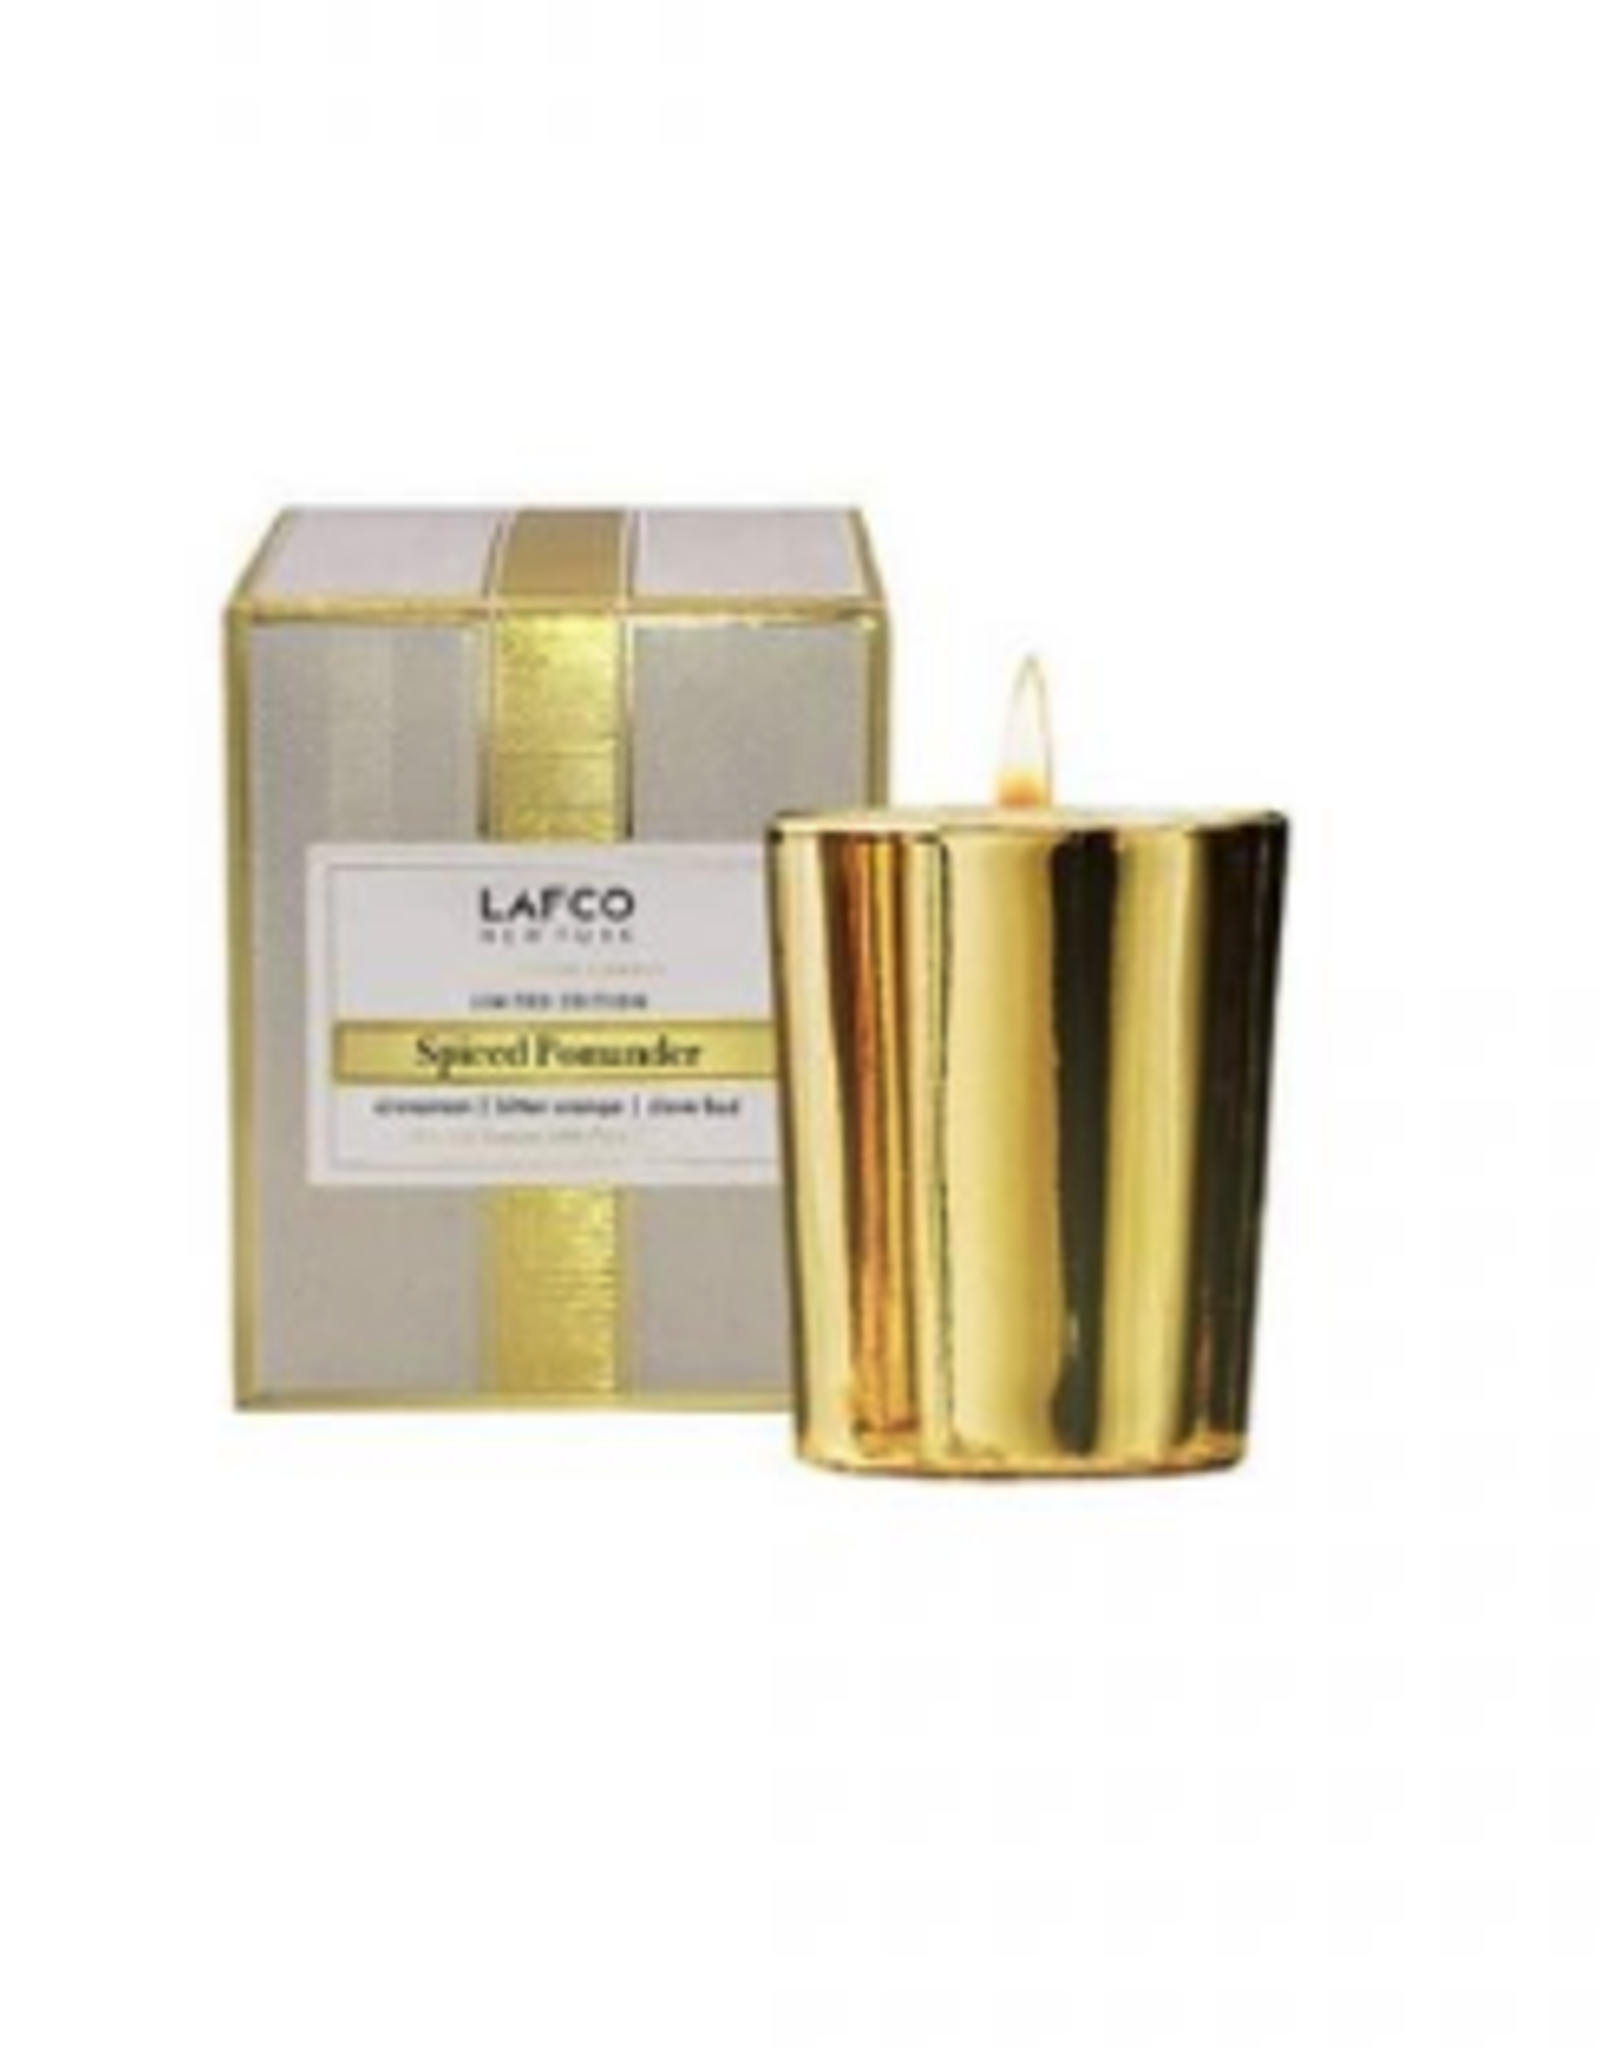 LAFCO LAFCO - 2 Oz Candle Frosted Pine Spiced Pomander